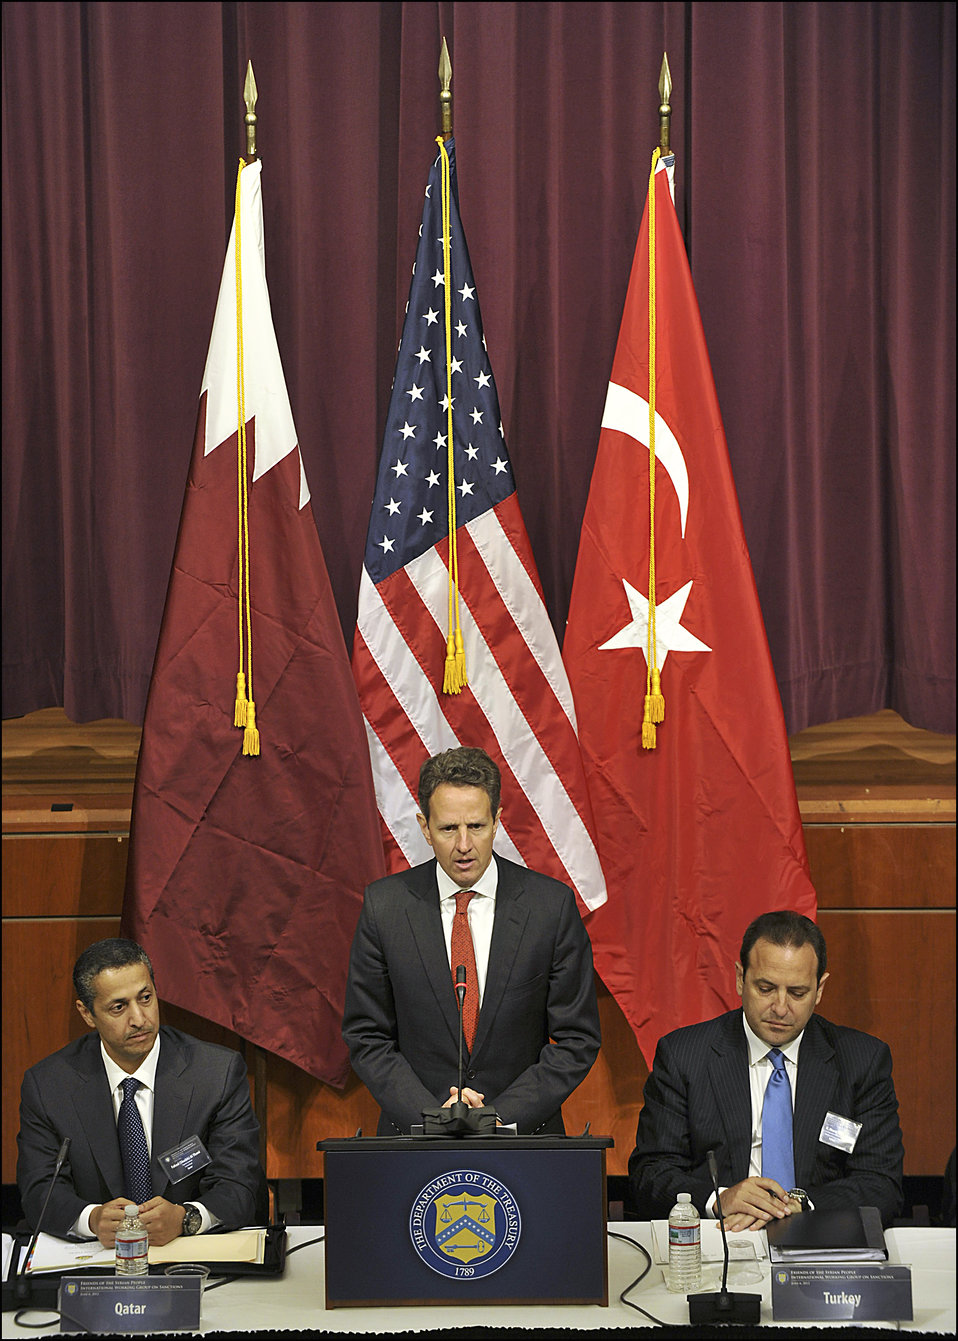 Secretary Geithner speaks before the Friends of Syrian People International Working Group on Sanctions